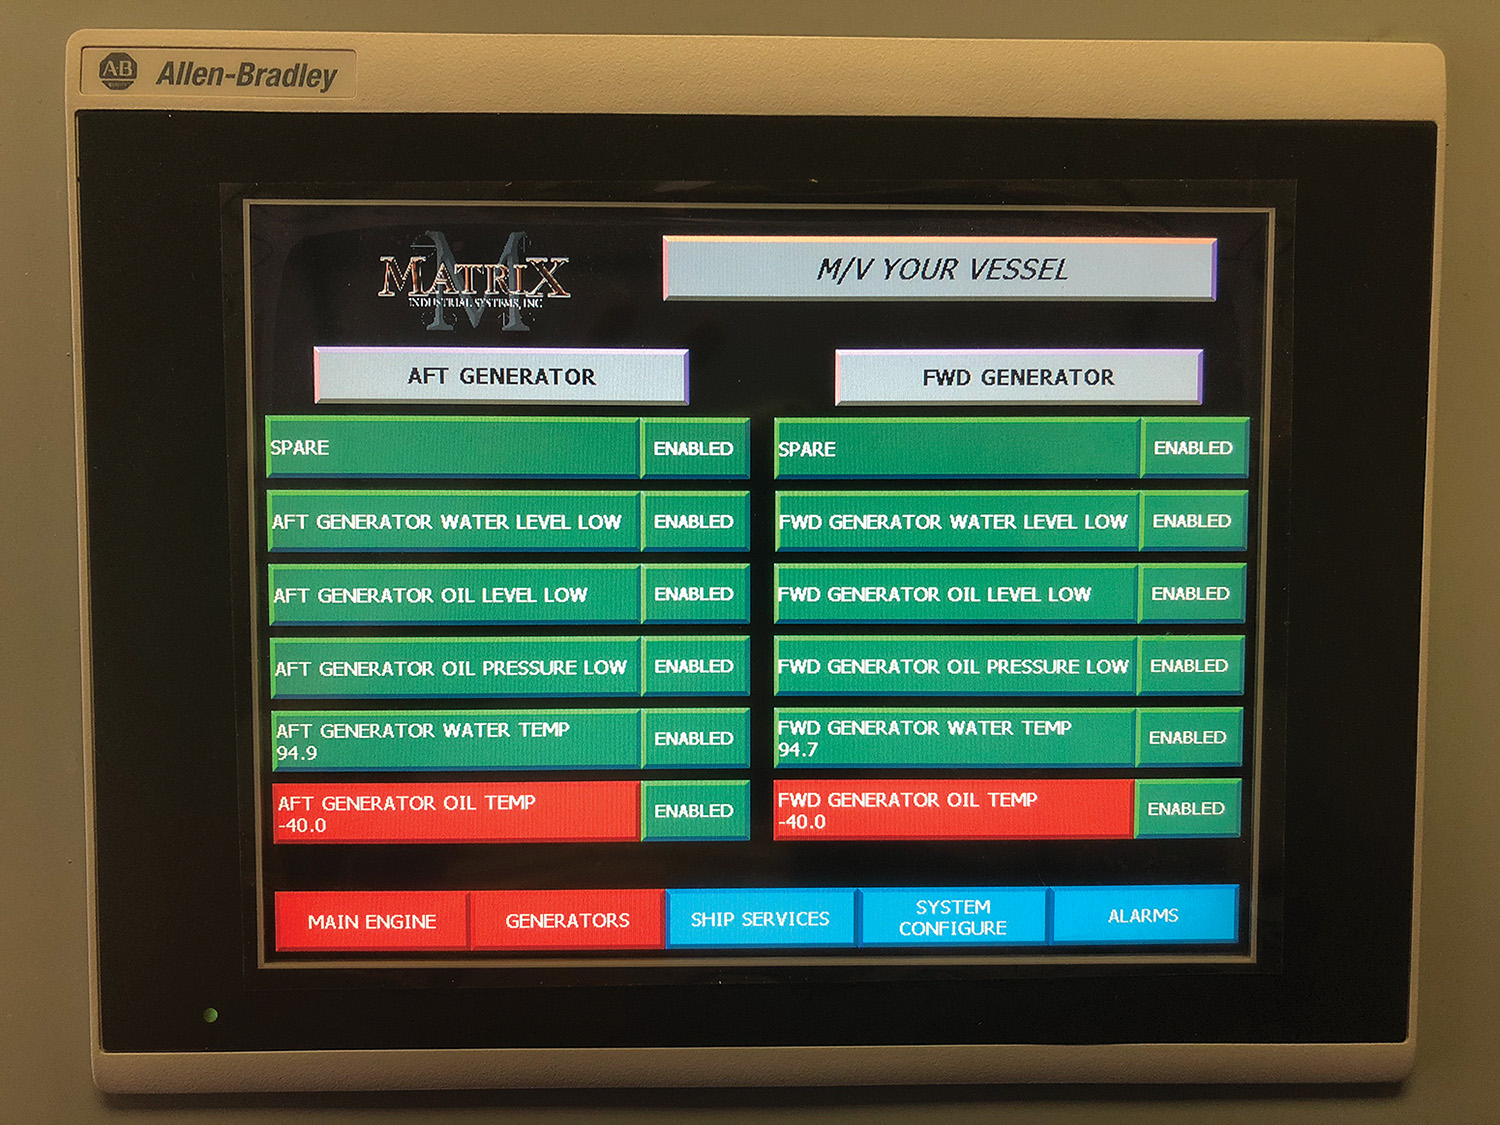 Sample screen showing Matrix Engineering's software.